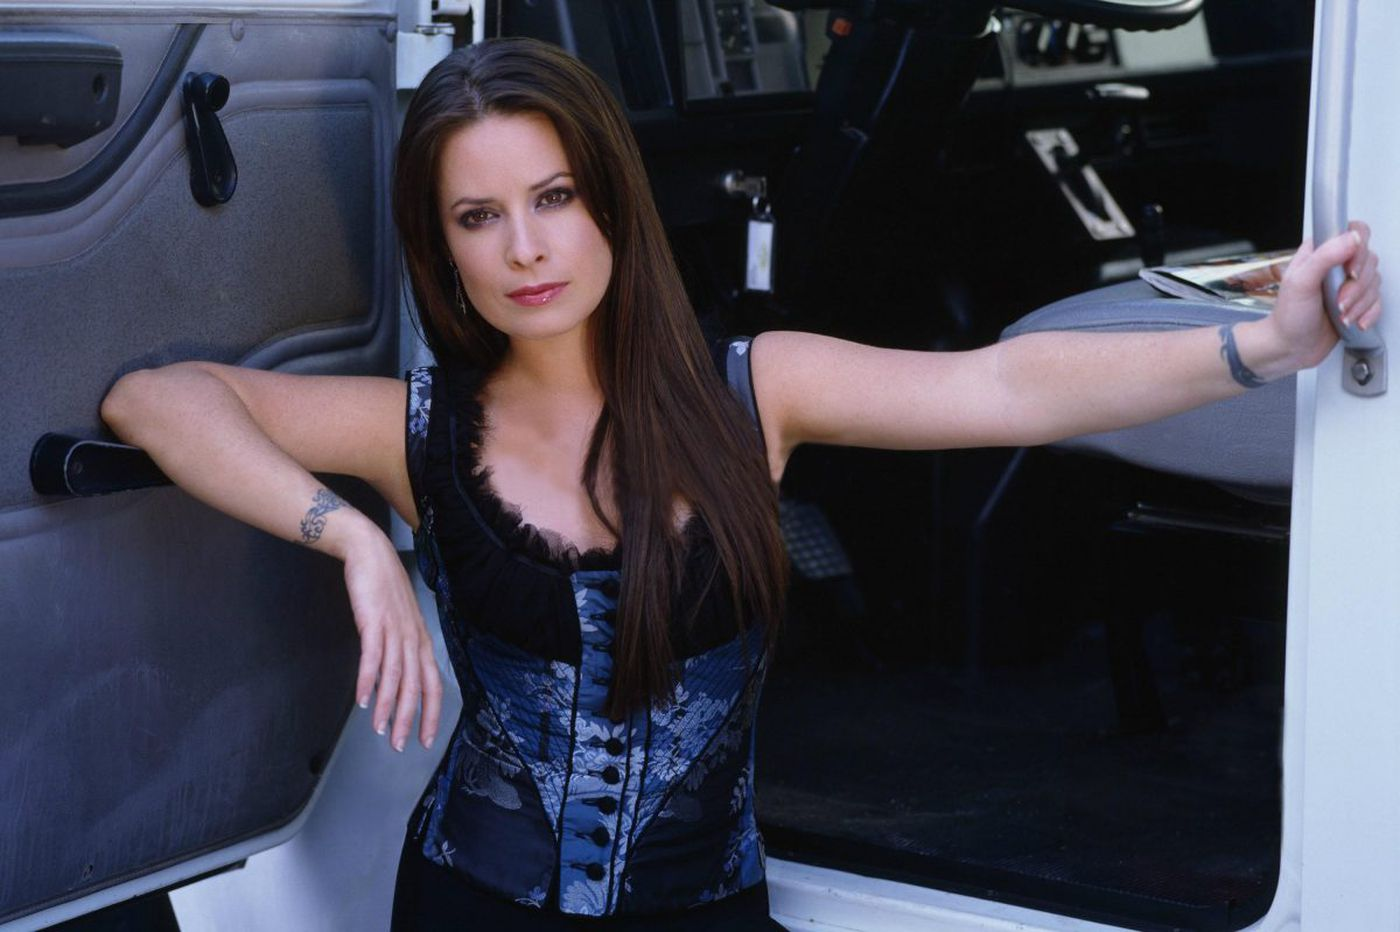 Holly Marie Combs remains 'Charmed' by her roles and her fans